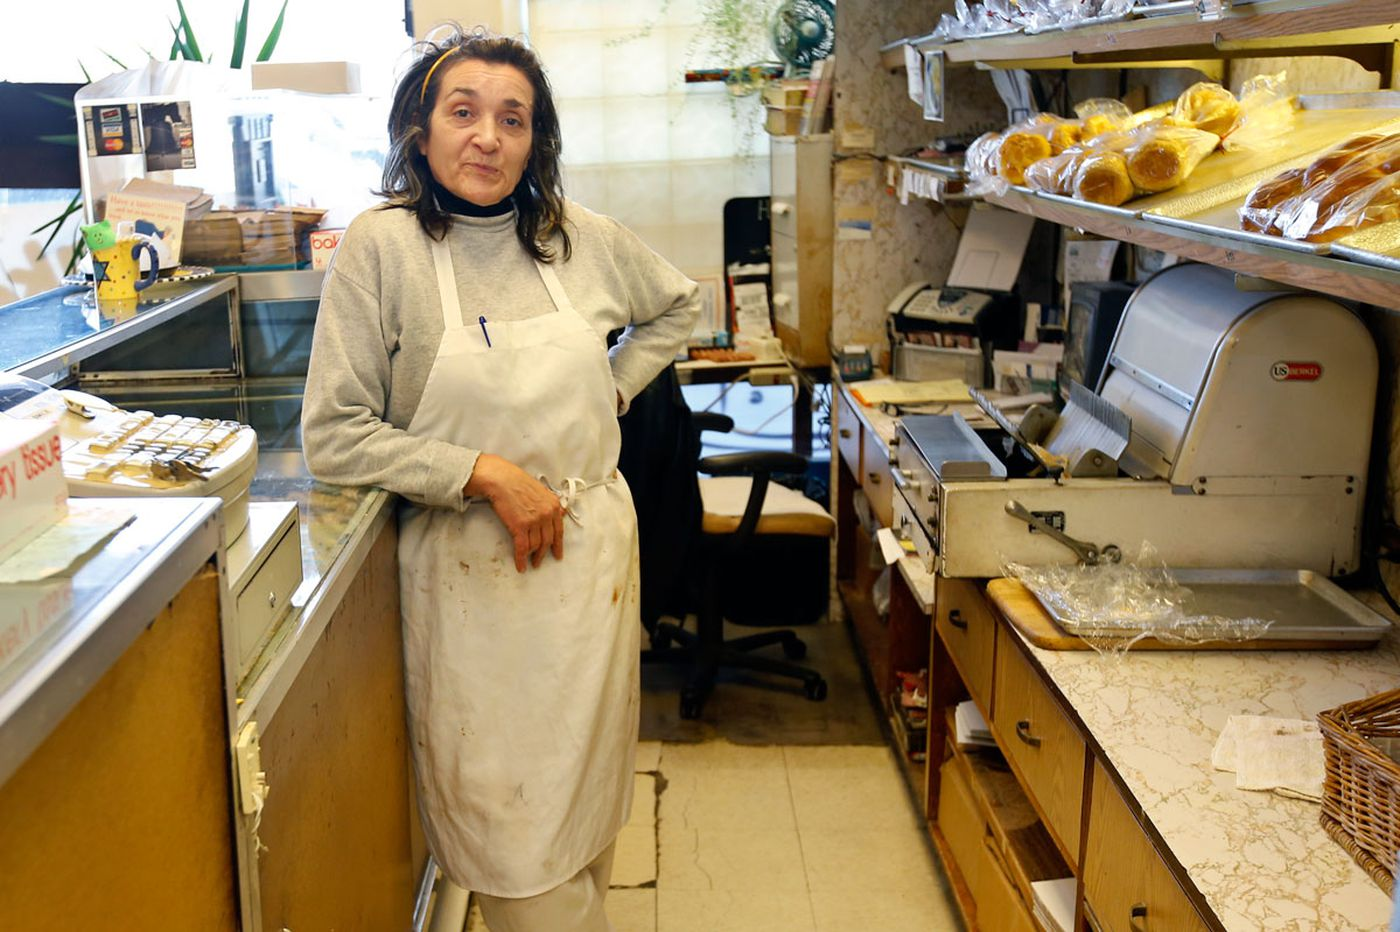 Shot and left for dead, Overbrook Park baker is back with protection